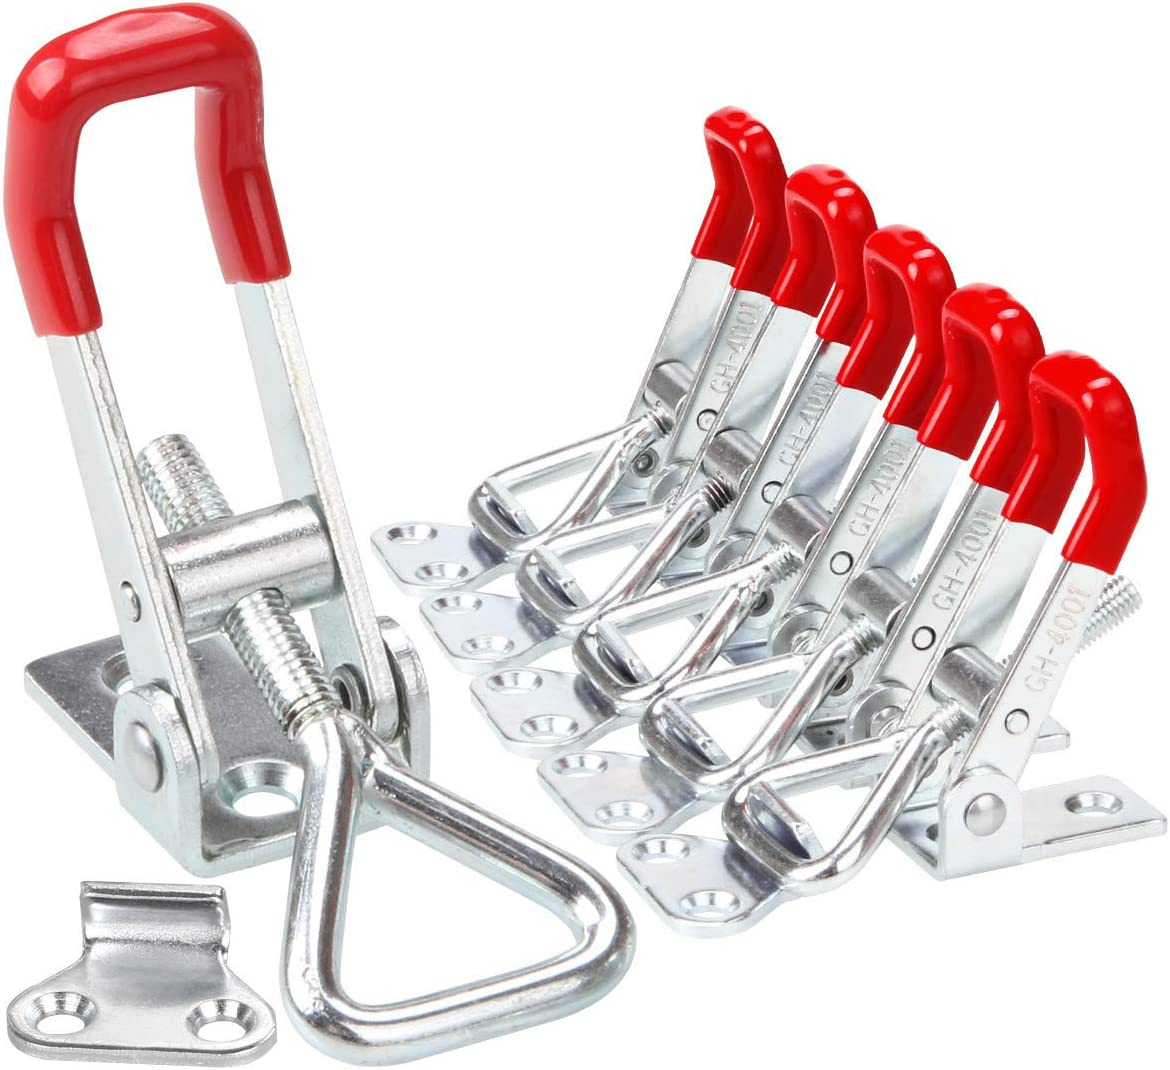 HONJIE 4001 150Kg 330Pound Latch-Action Toggle Clamp with Triangle Shaped Lever-5pcs